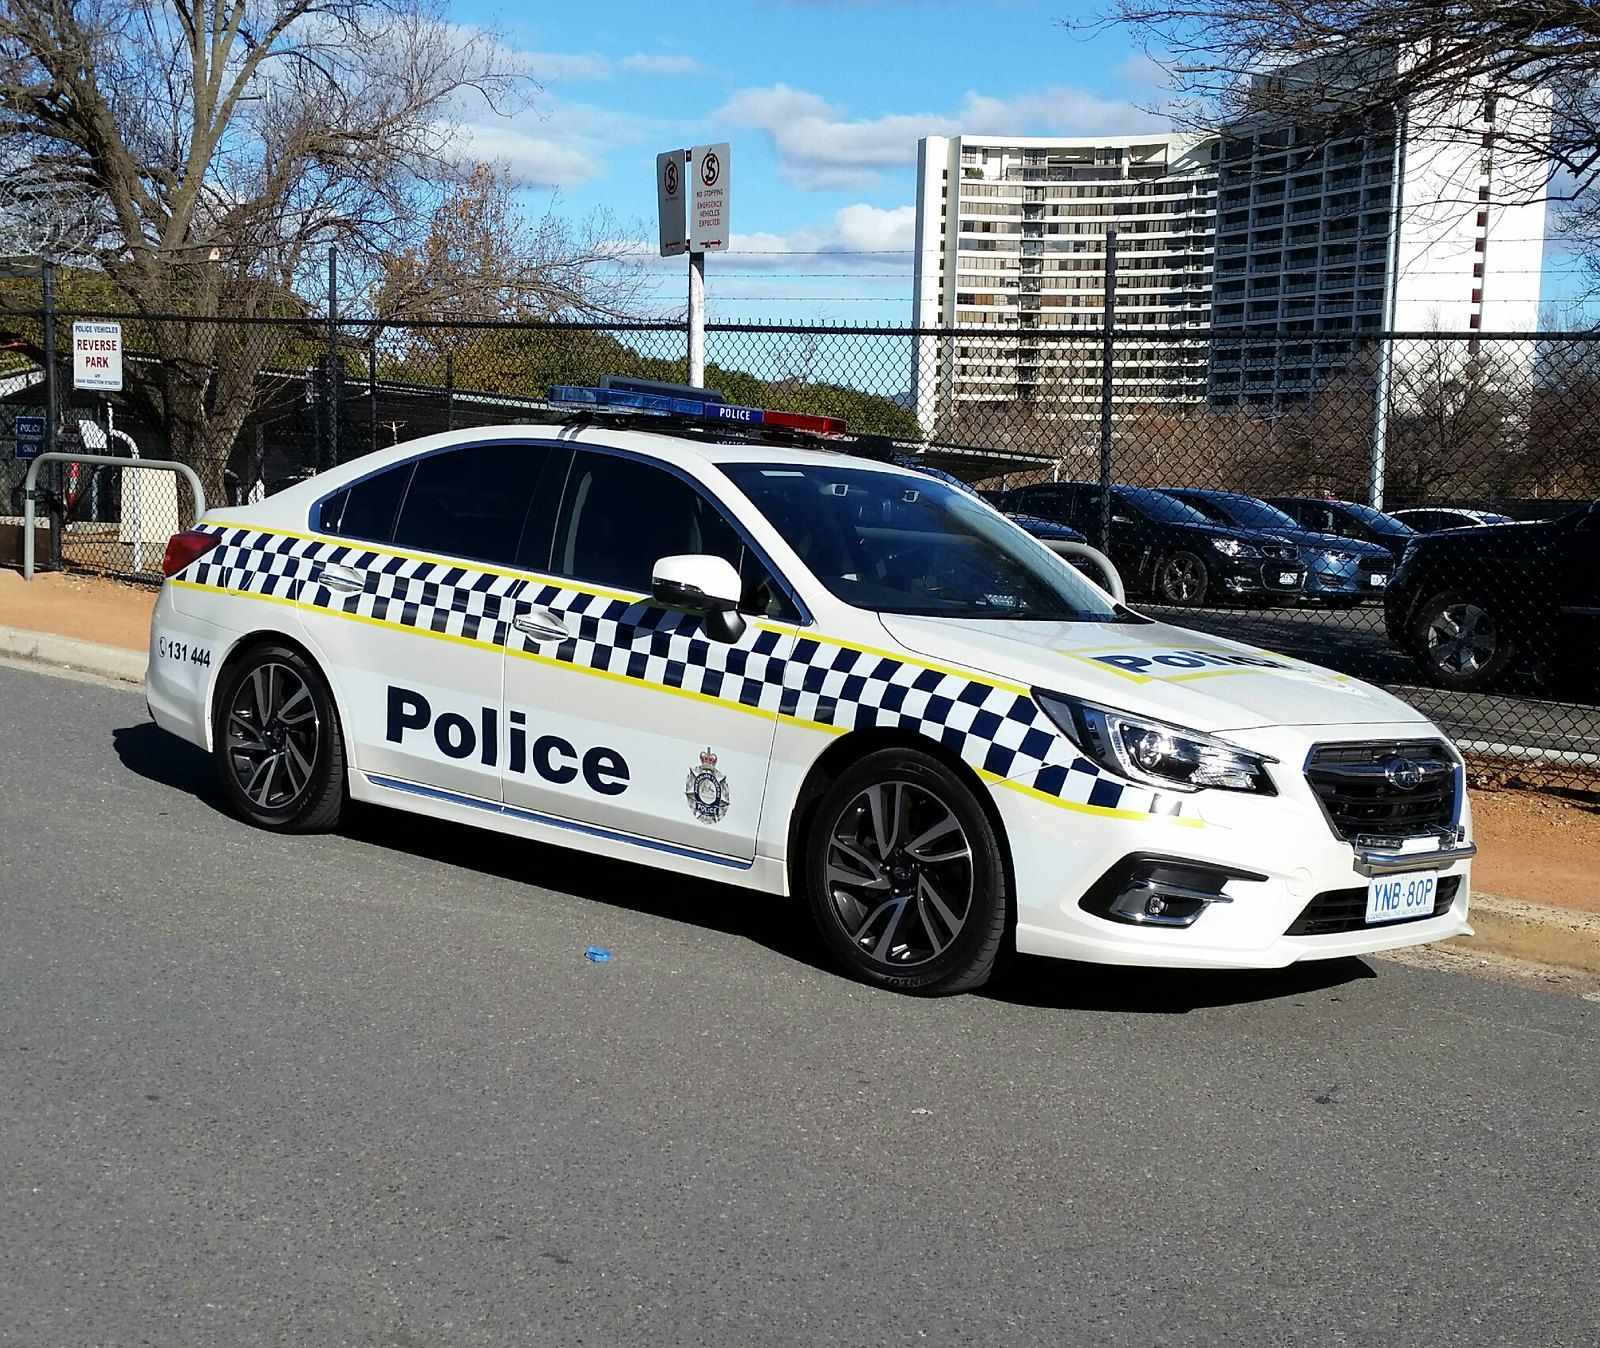 New Act Police Subaru Liberty With A Return To The Checkered Markings Subaru Police Police Cars